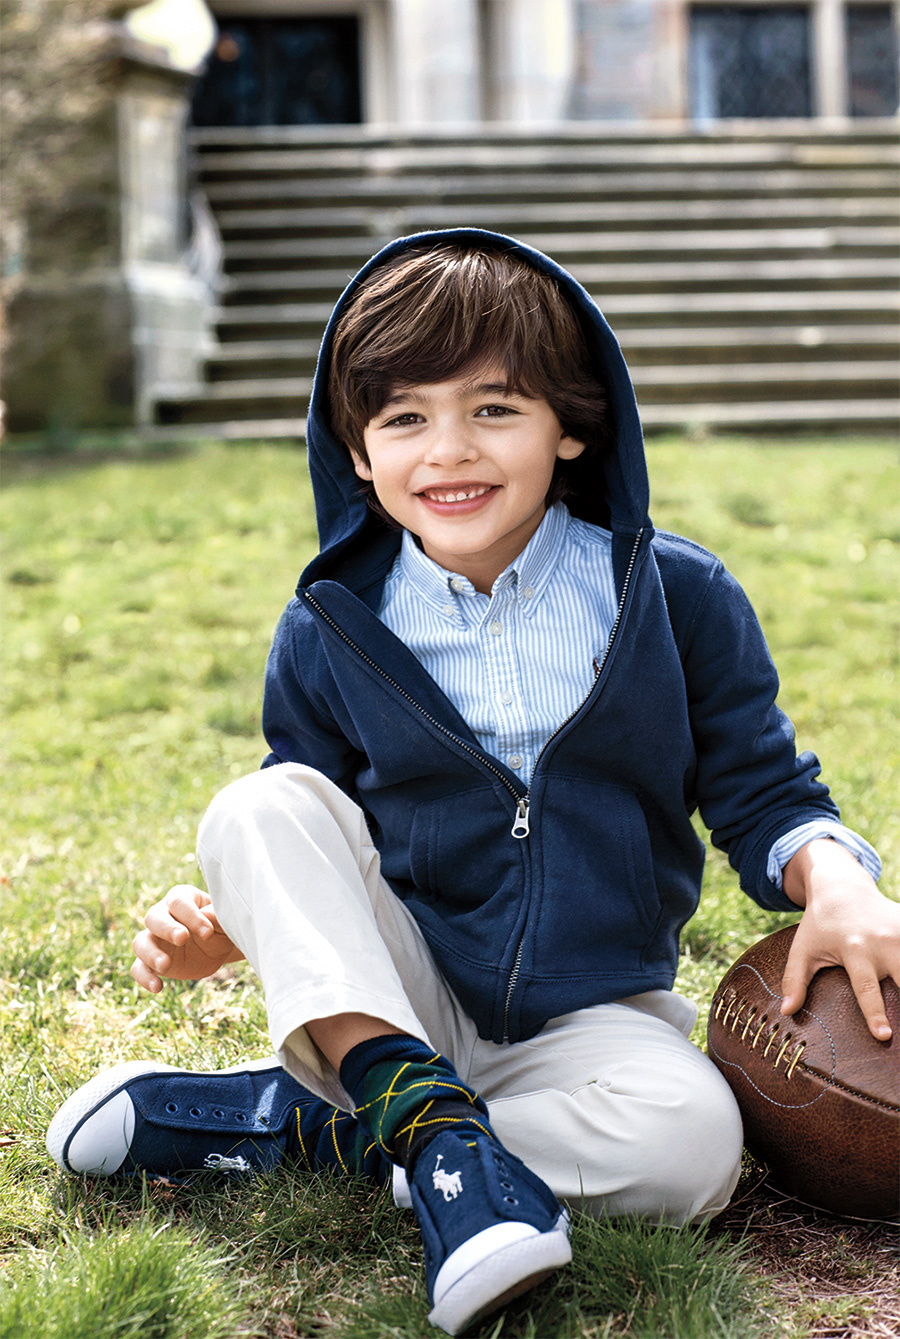 Top latest polo ralph lauren mens polos big pony yellow blue hot sale,childrens ralph lauren,ralph lauren bedding,Store. Top latest polo ralph lauren mens polos big pony yellow blue hot sale,childrens ralph lauren,ralph lauren bedding,Store. Move your mouse over image or click to enlarge.